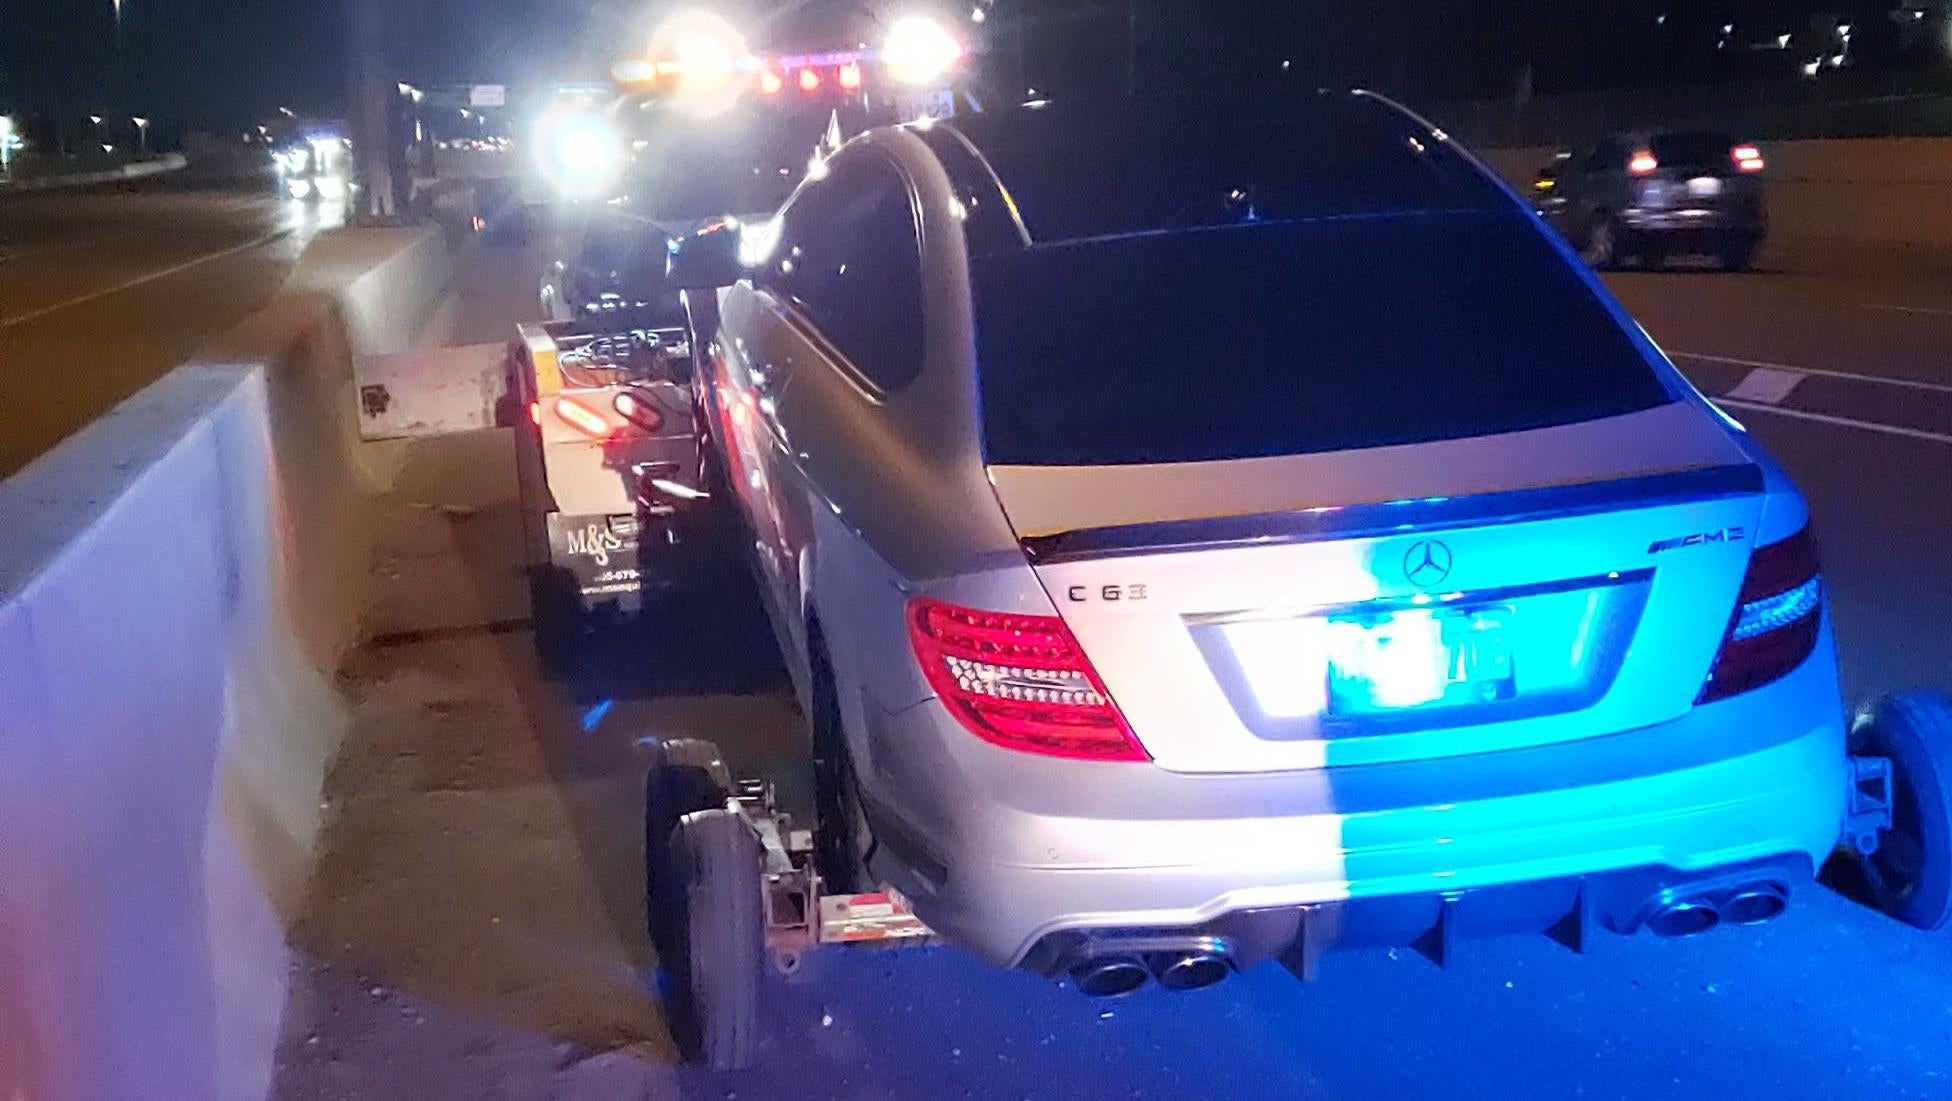 Canadian Police Officer Absolutely Baffled By Mercedes C63 AMG Clocked At 308 KM/H